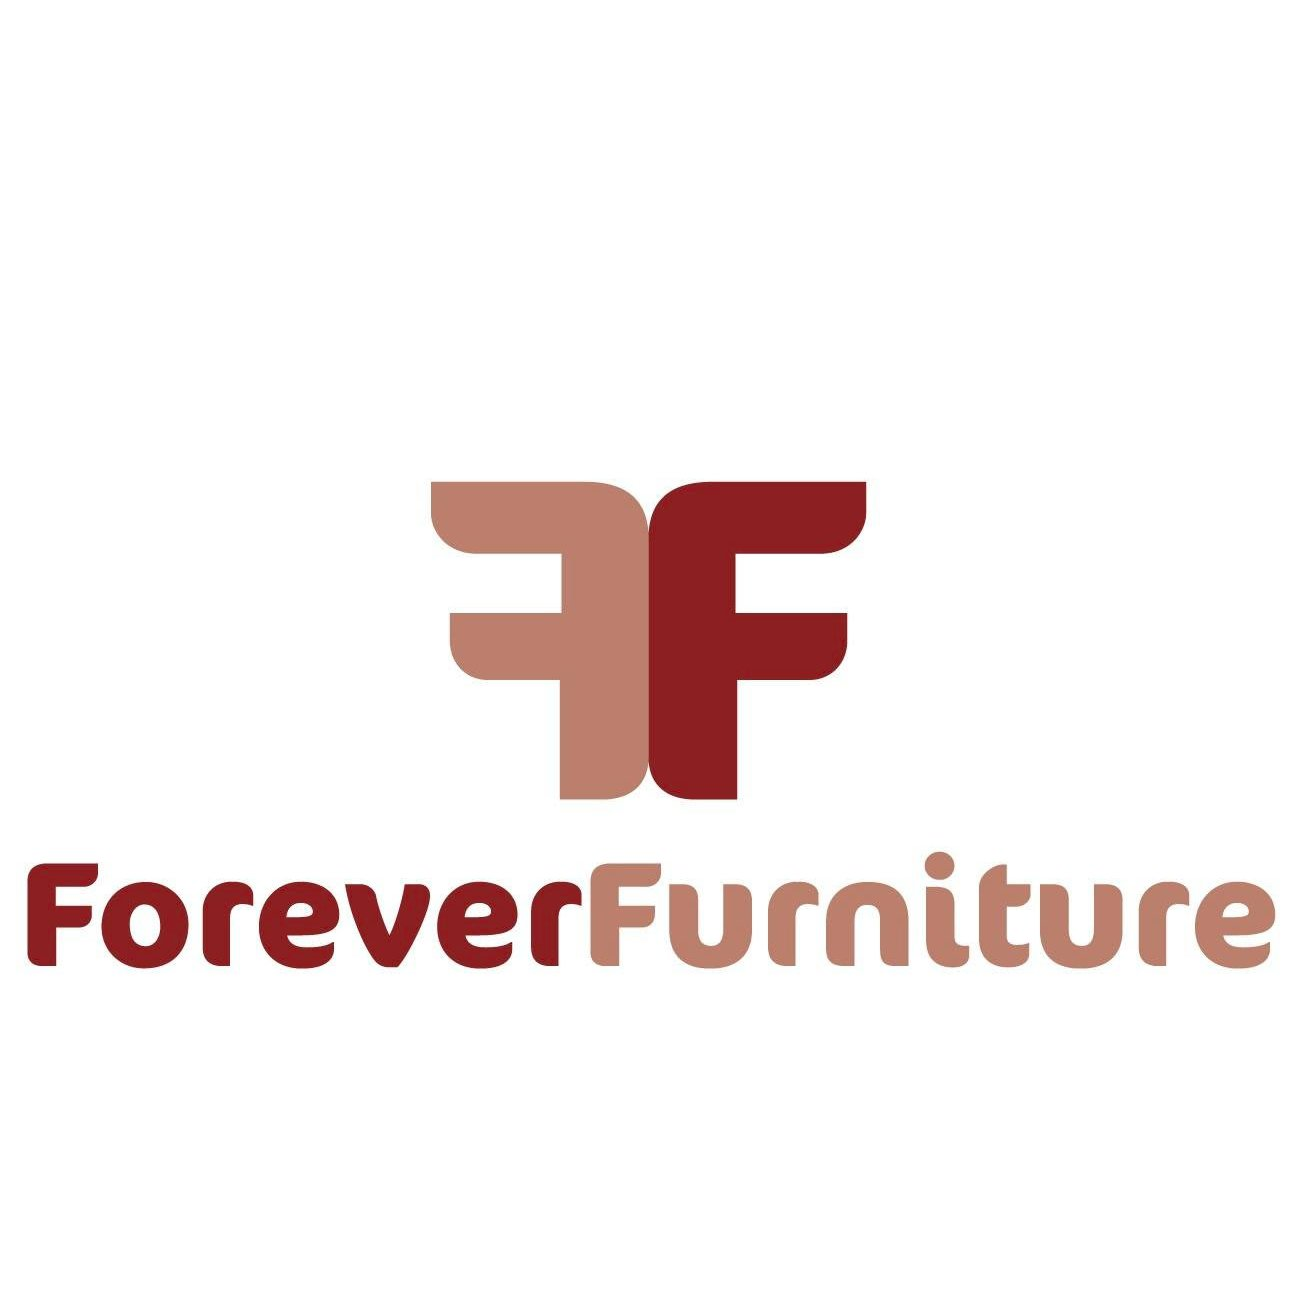 Forever Furniture - Bexleyheath, London DA7 4RD - 020 8304 7400 | ShowMeLocal.com